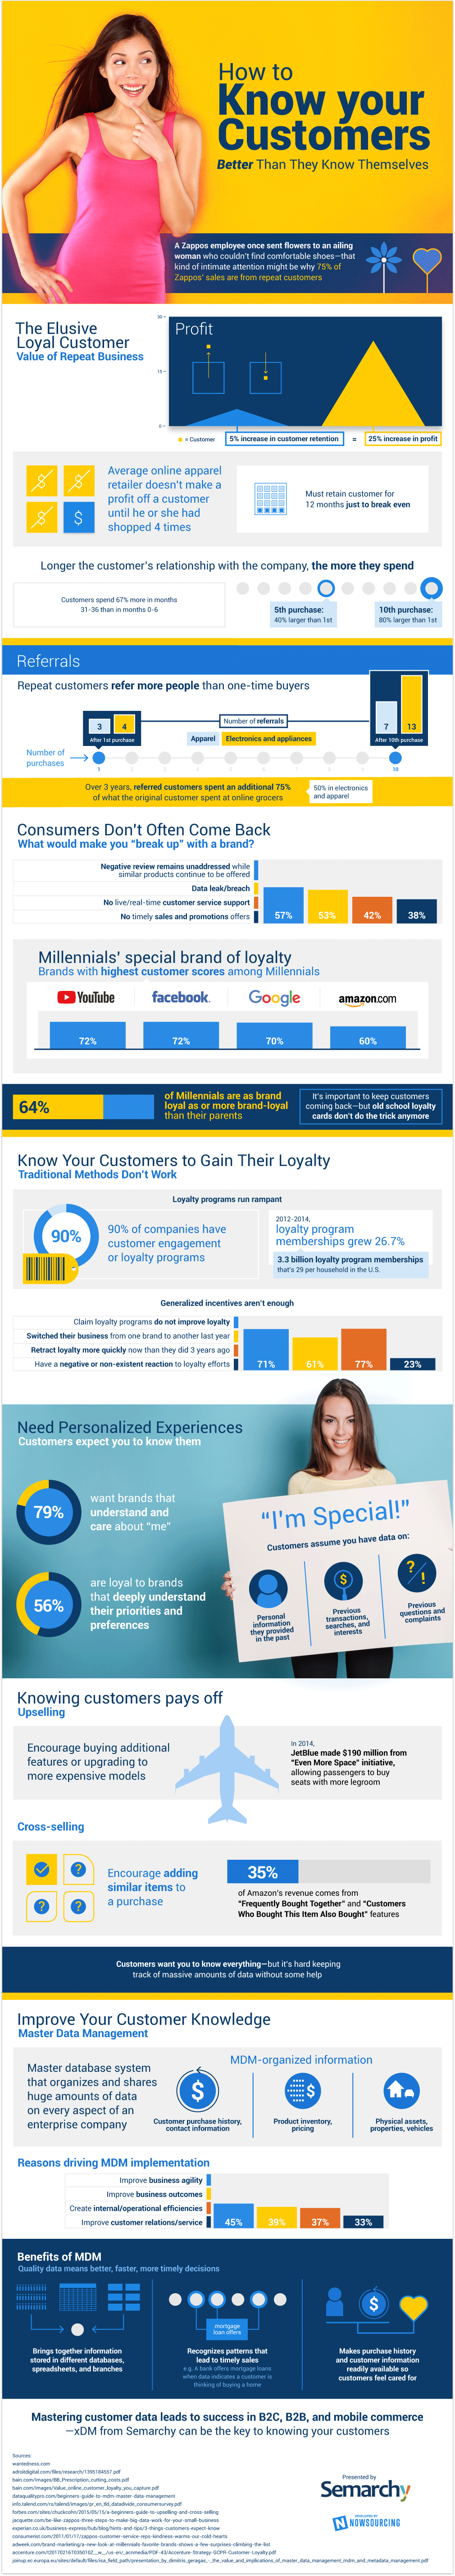 Customer MDM Infographic Upsell Cross-Sell Image